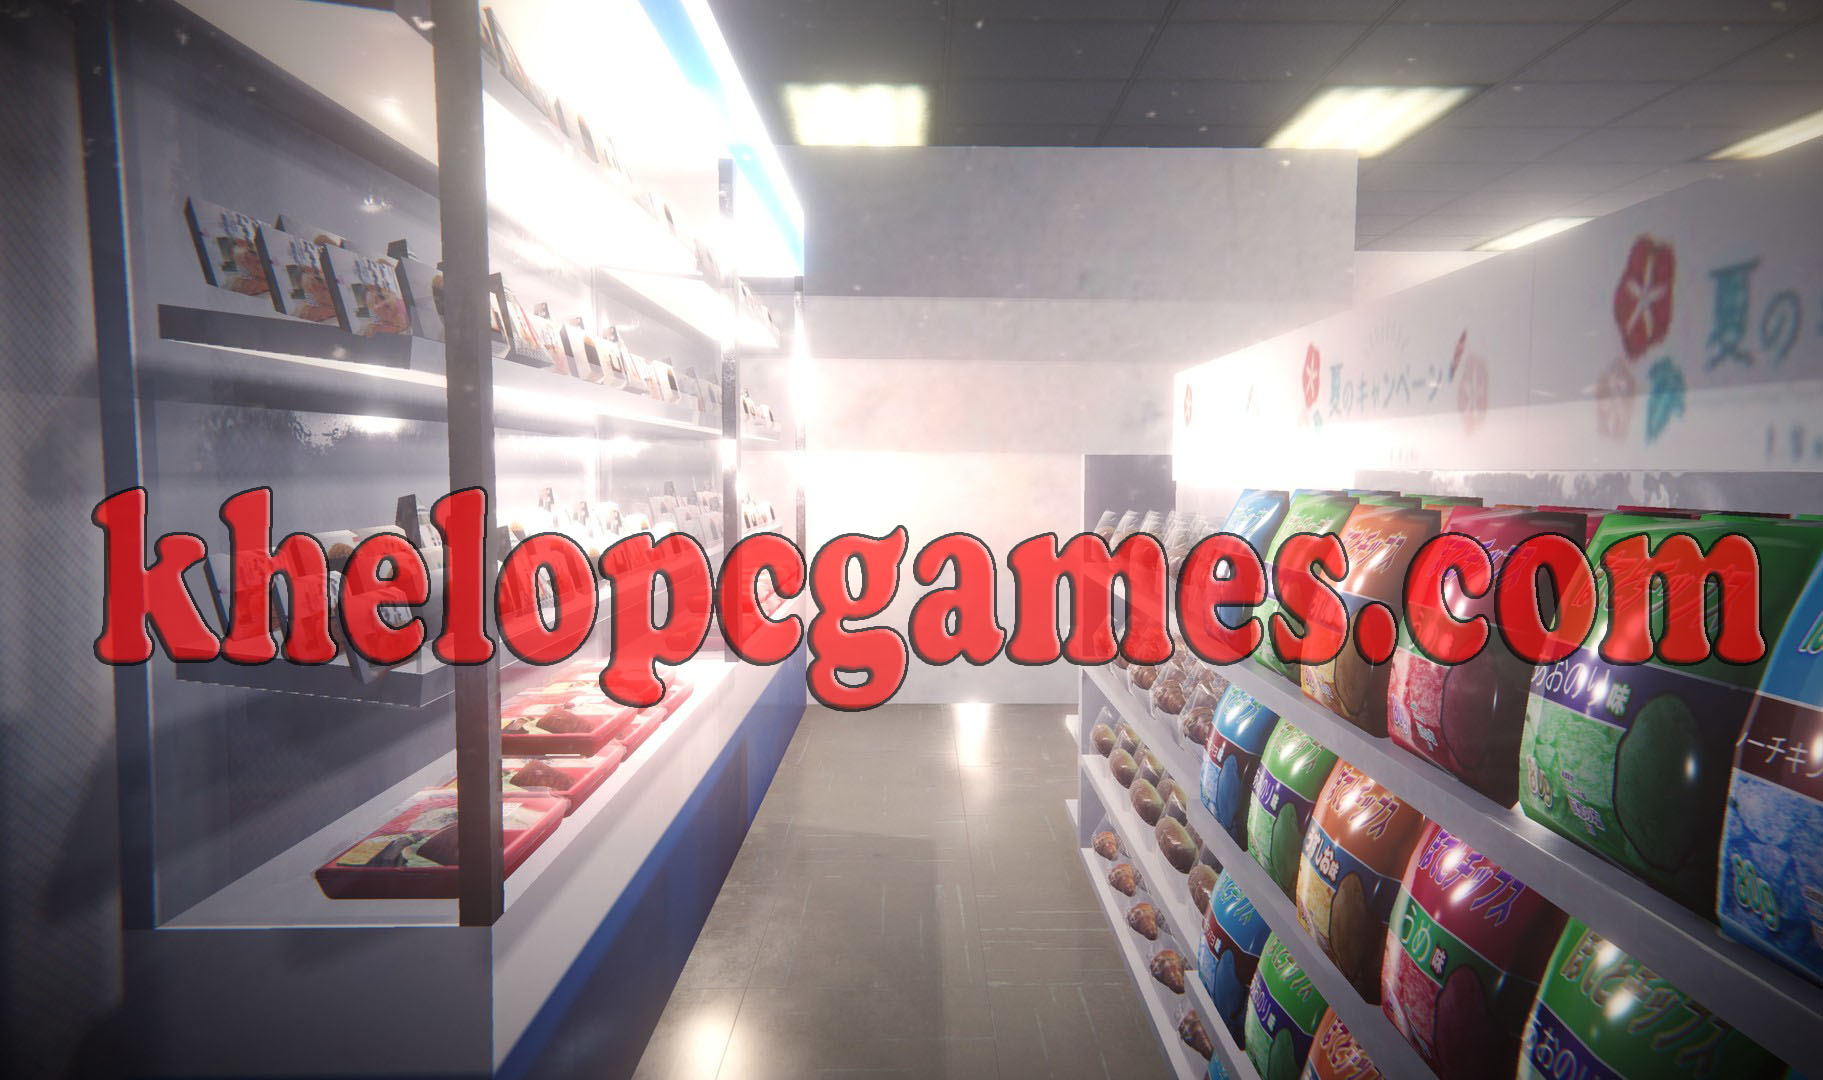 The Convenience Store | 夜勤事件 Pc Game Full Setup Free Download